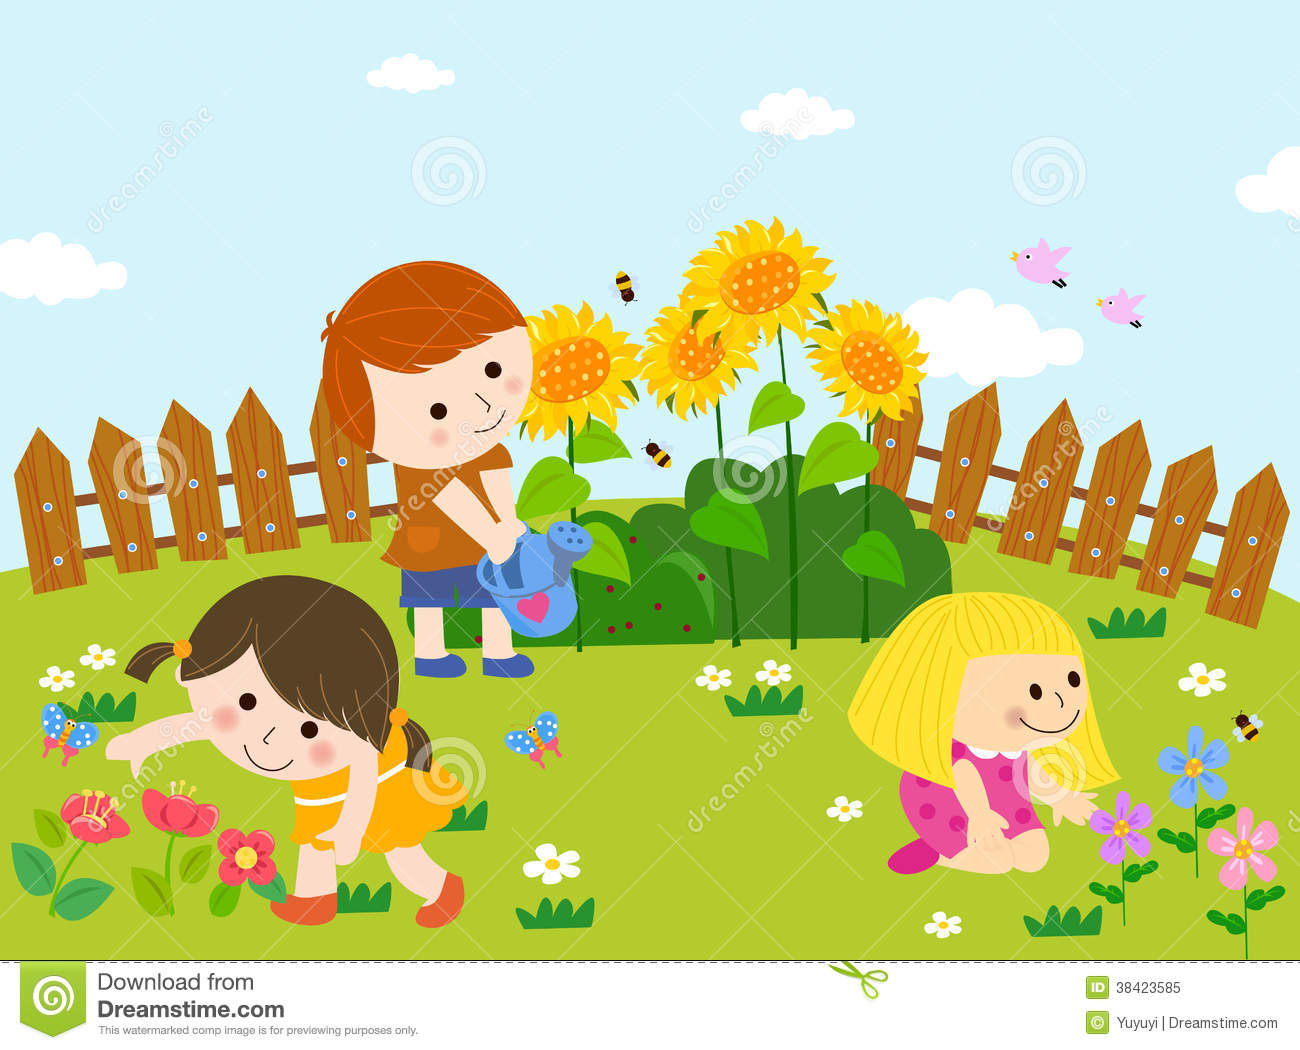 Happy garden royalty free stock photo image 38423585 for Jardin feliz